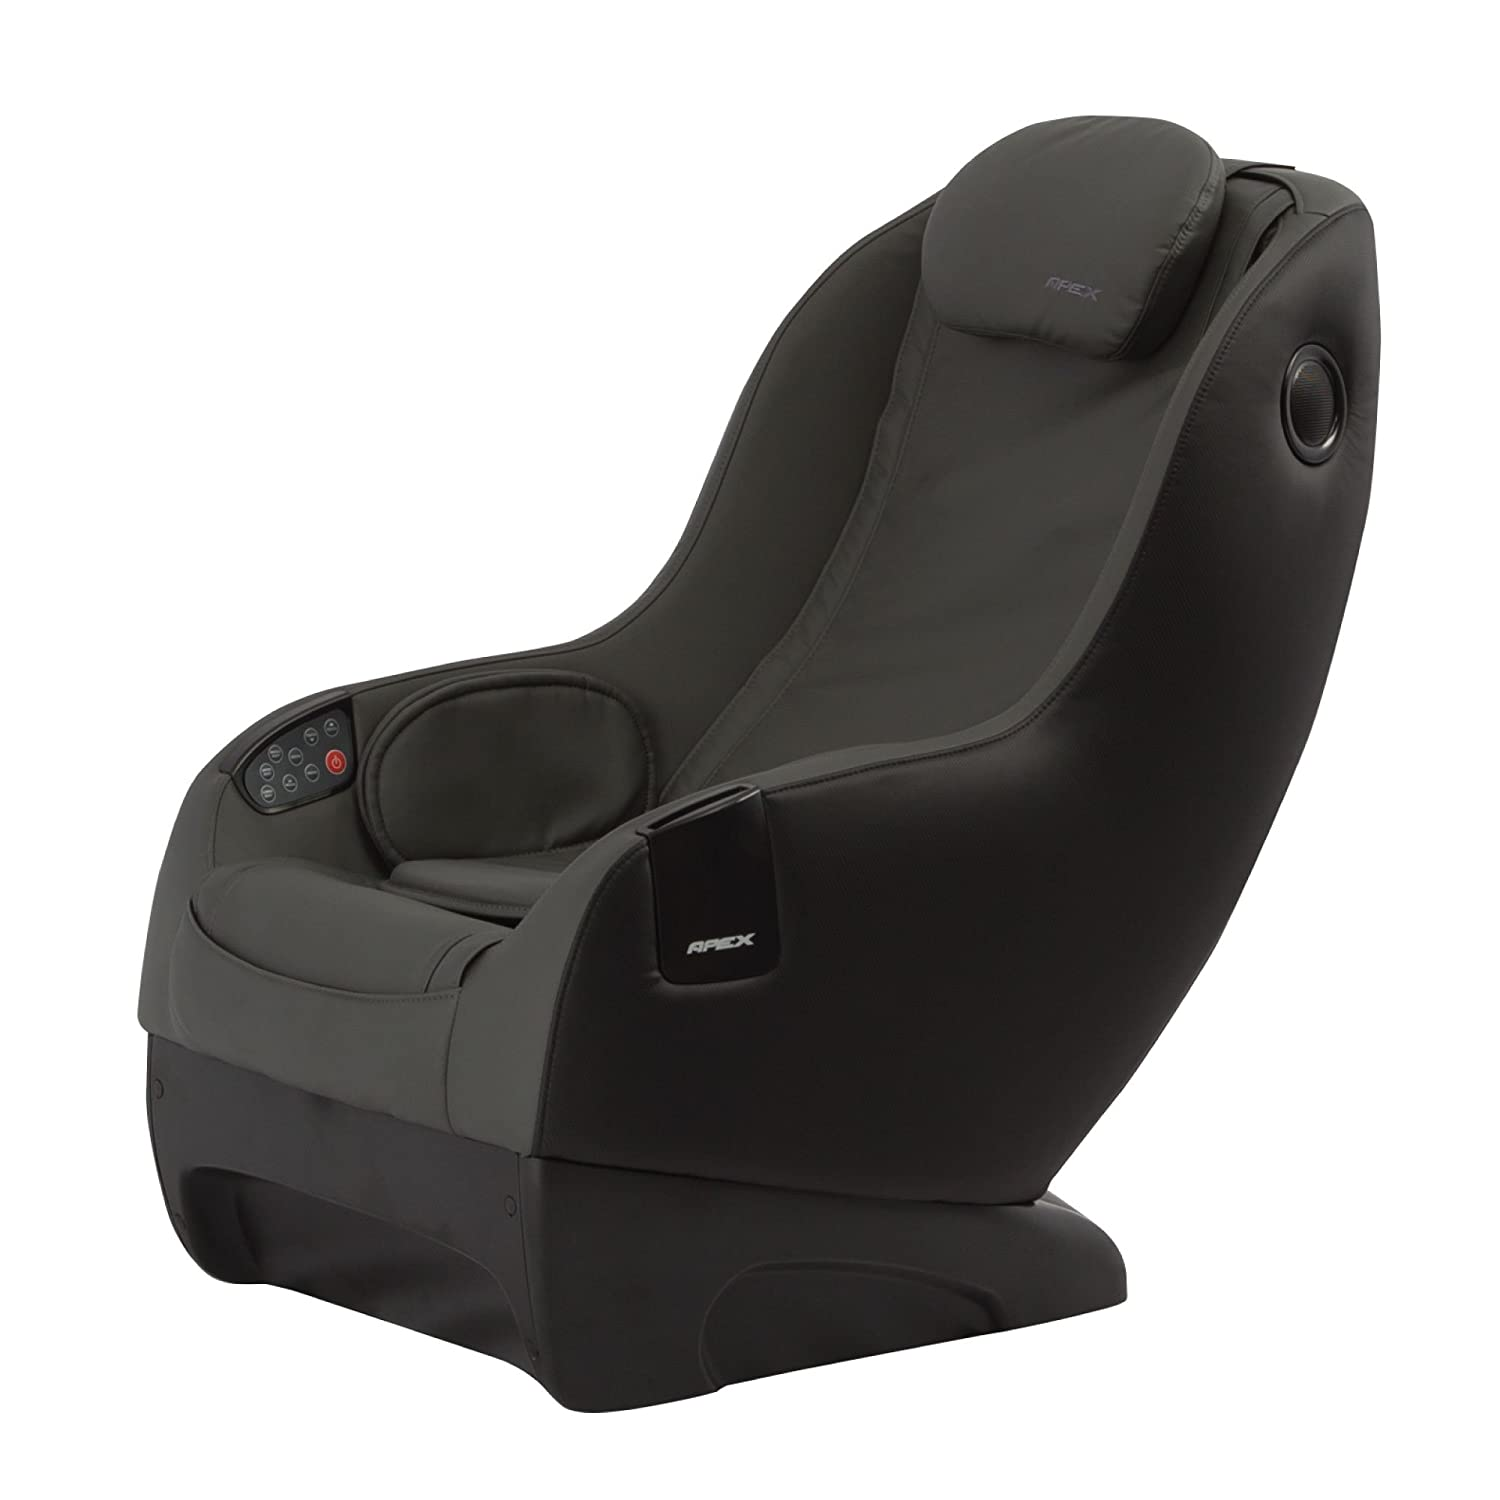 Amazon Apex iCozy Leisure Massage Chair Grey Black Beauty